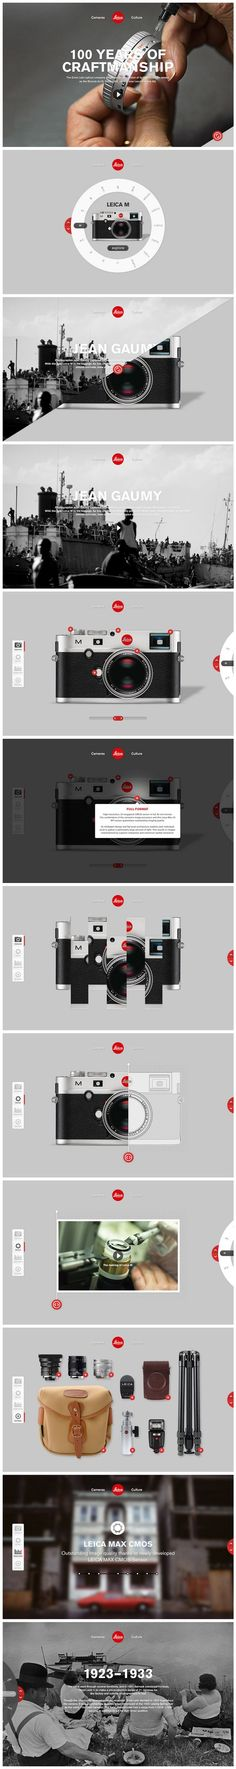 Leica| | Though I think this page is rather long, it seems to tell a good story which everyone loves.